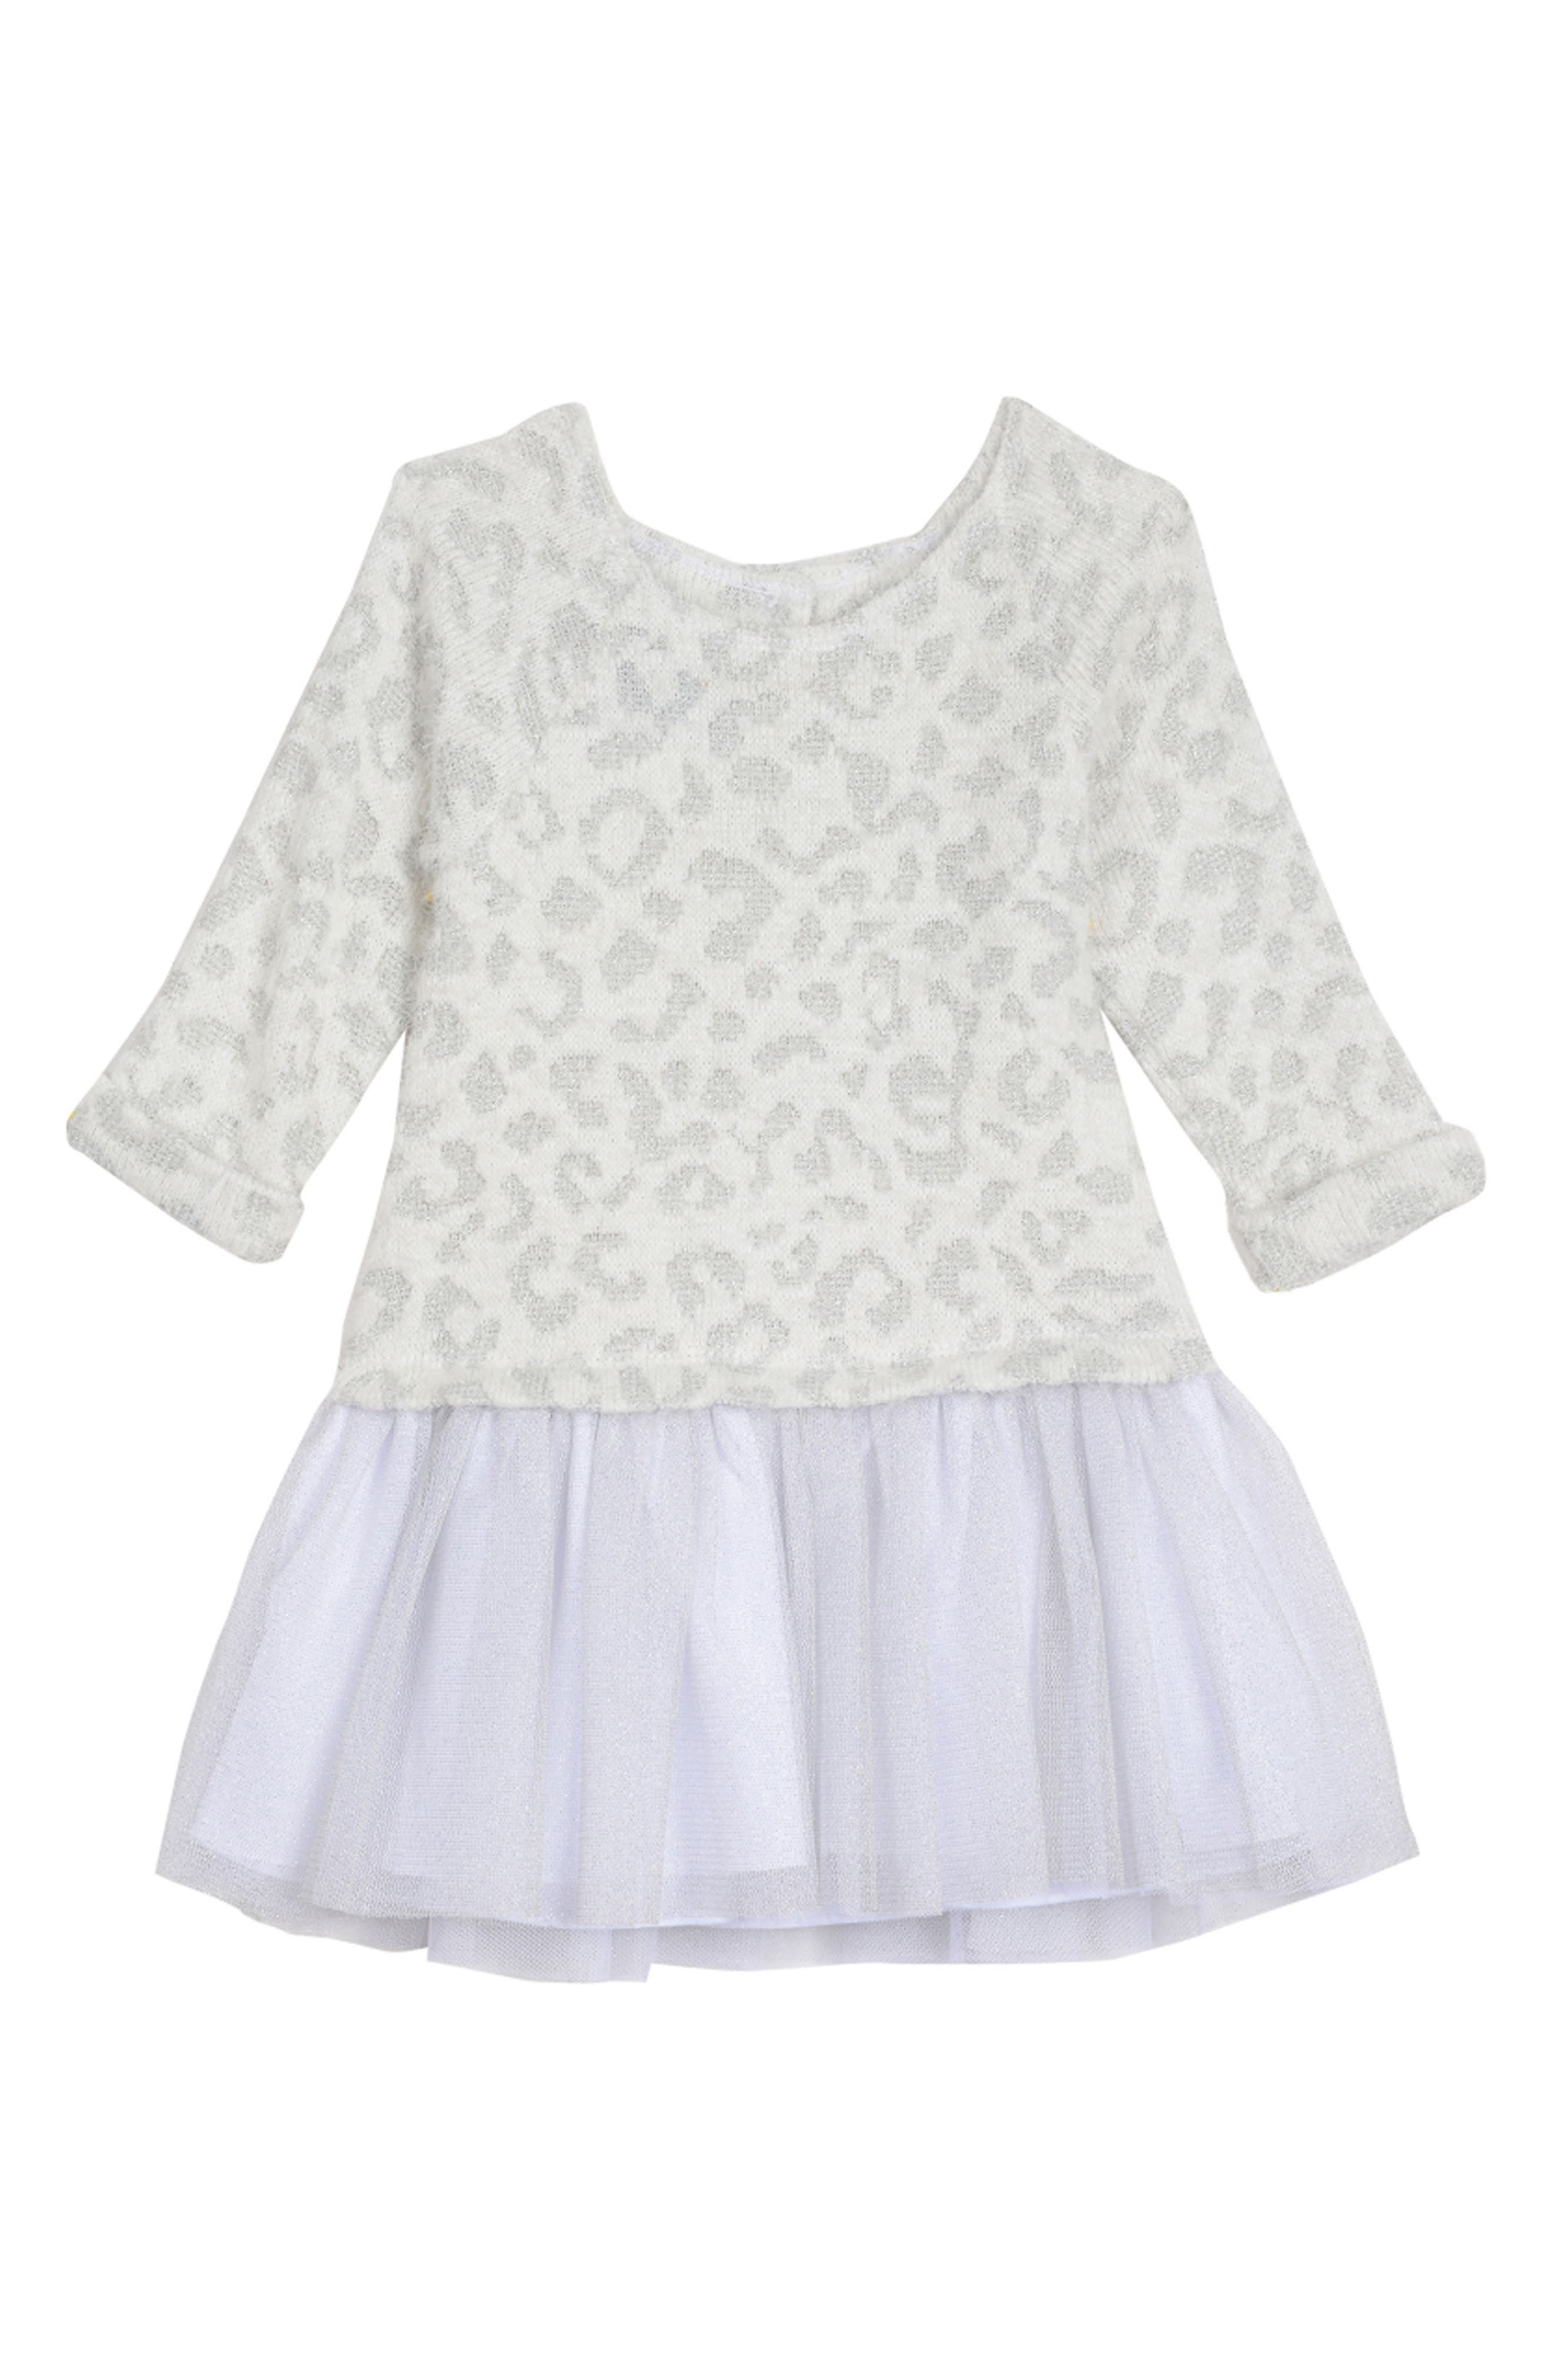 PIPPA & JULIE Animal Pattern Sweater Dress, Main, color, WHITE/ SILVER